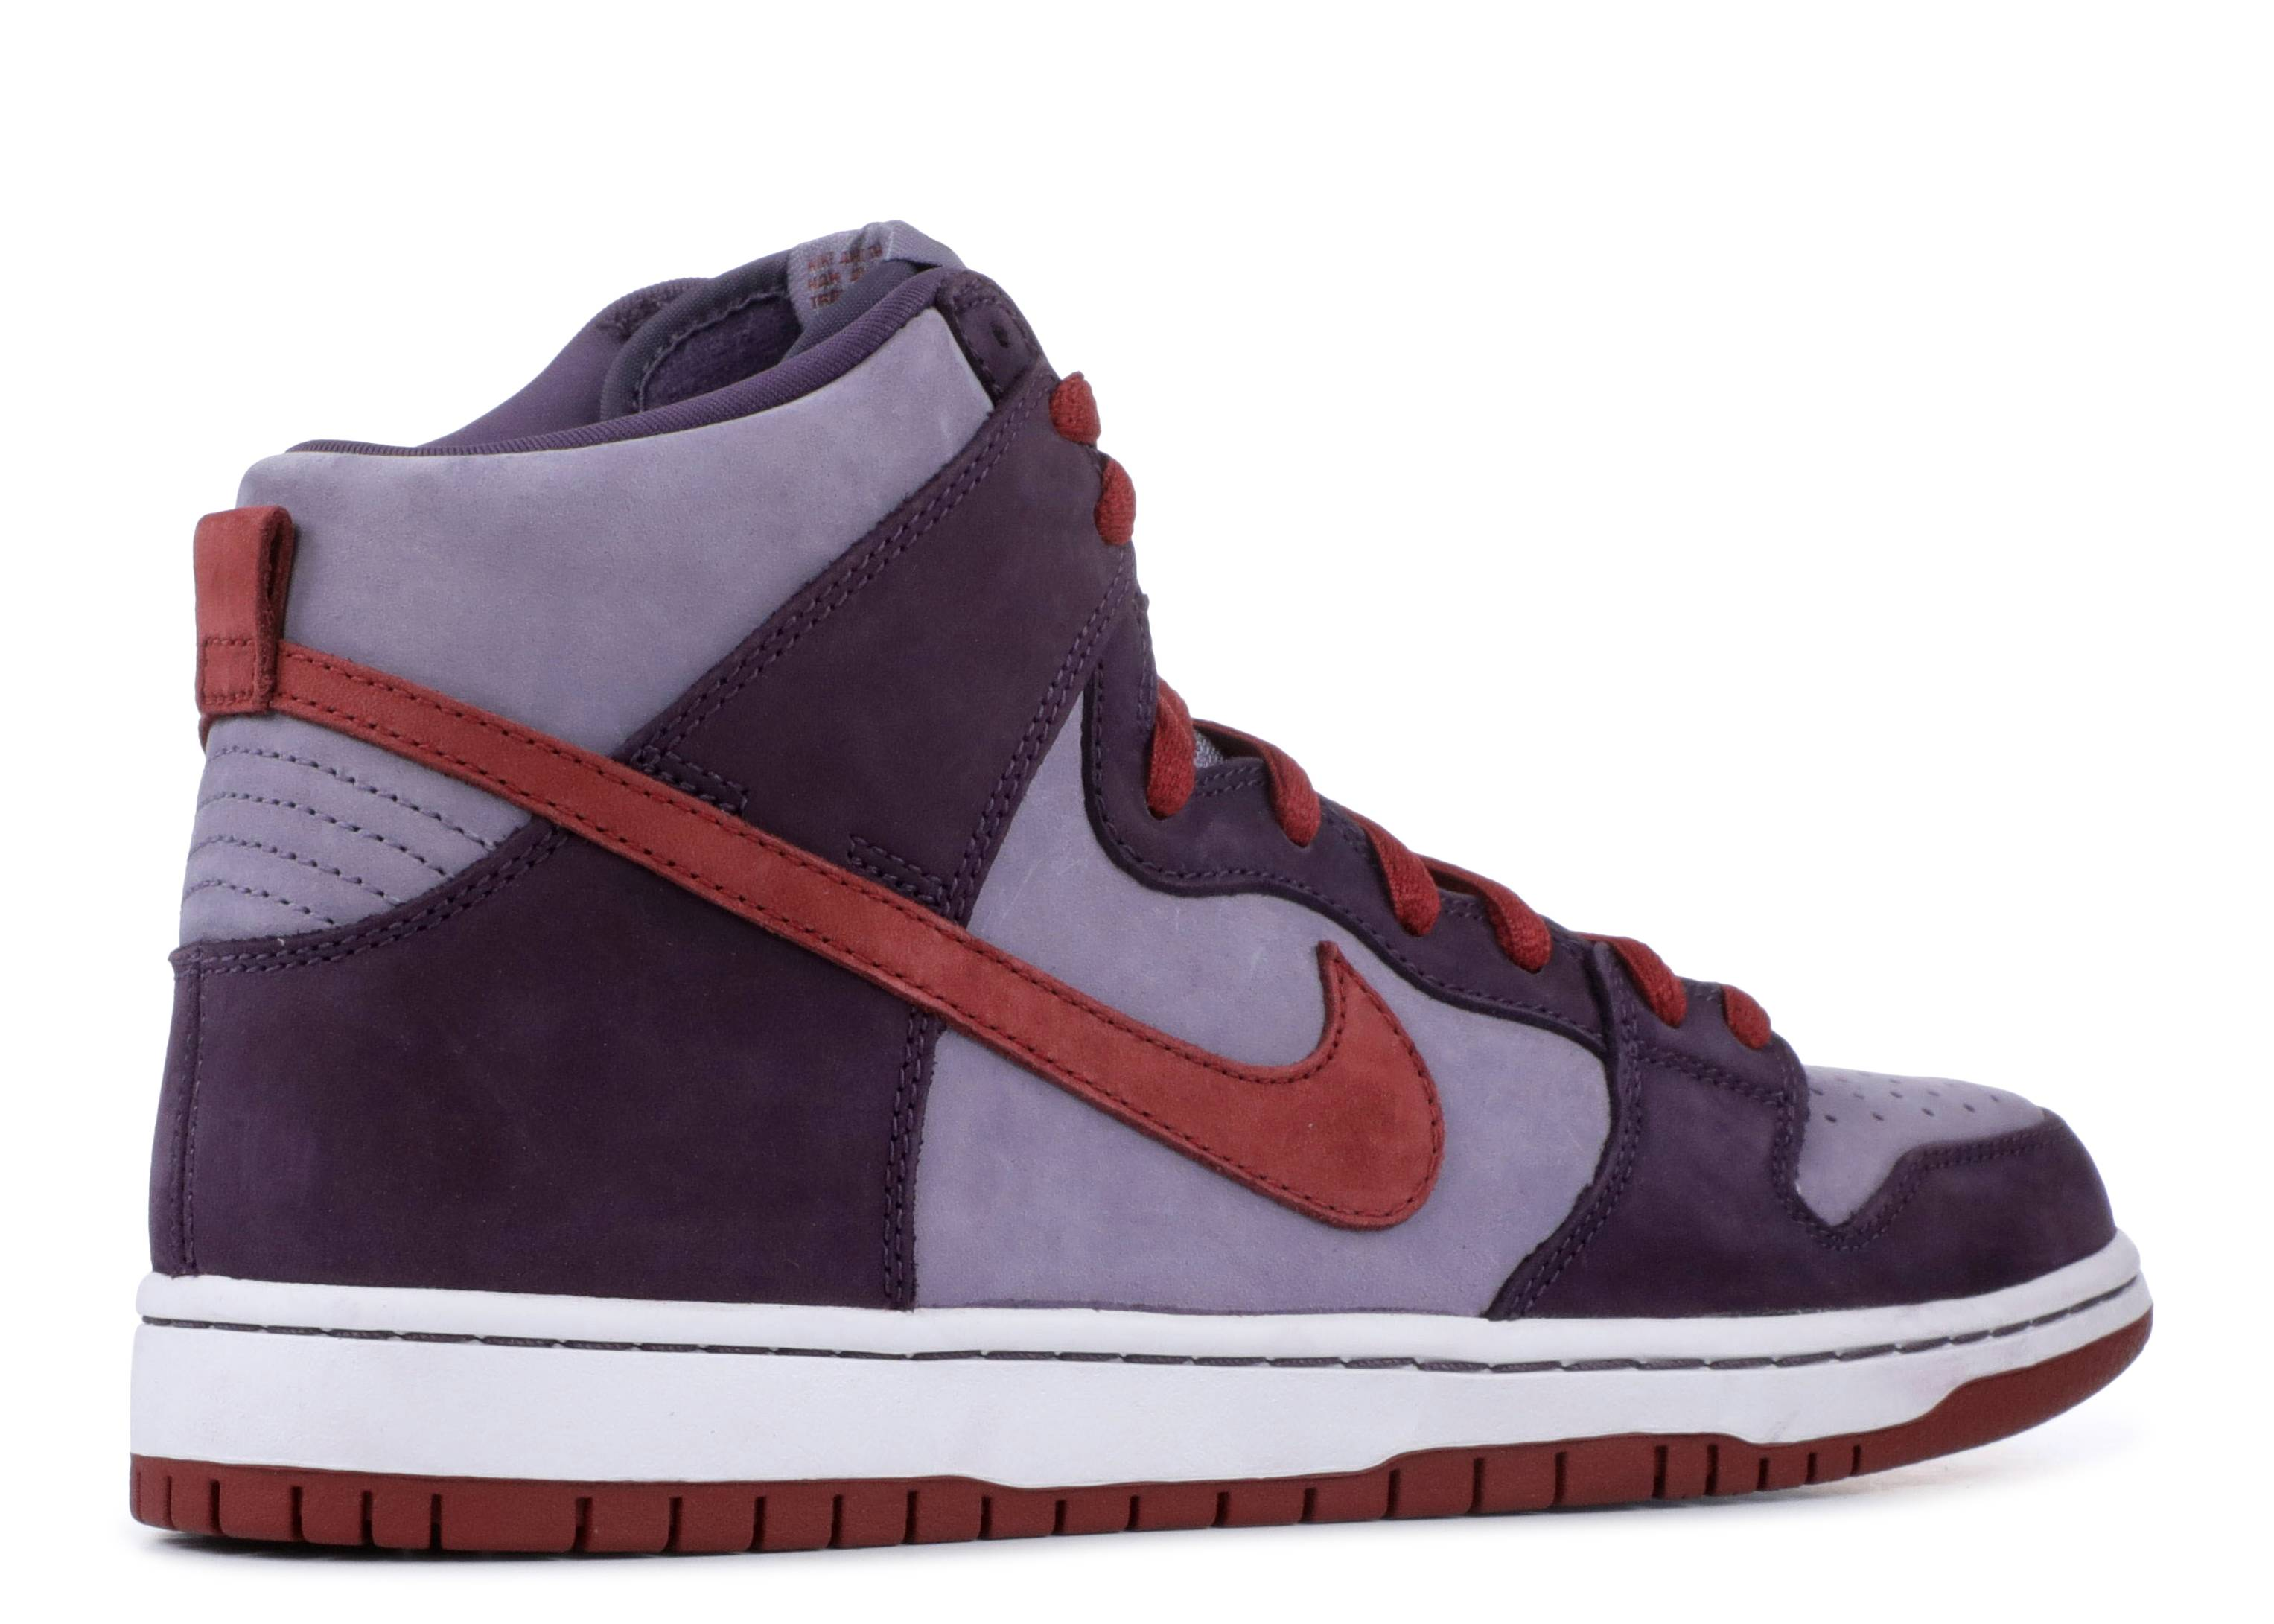 save off 76b51 040dc ... greece dunk high premium sb plum nike 313171 500 daybreak barn plum  flight club 32eea c9d72